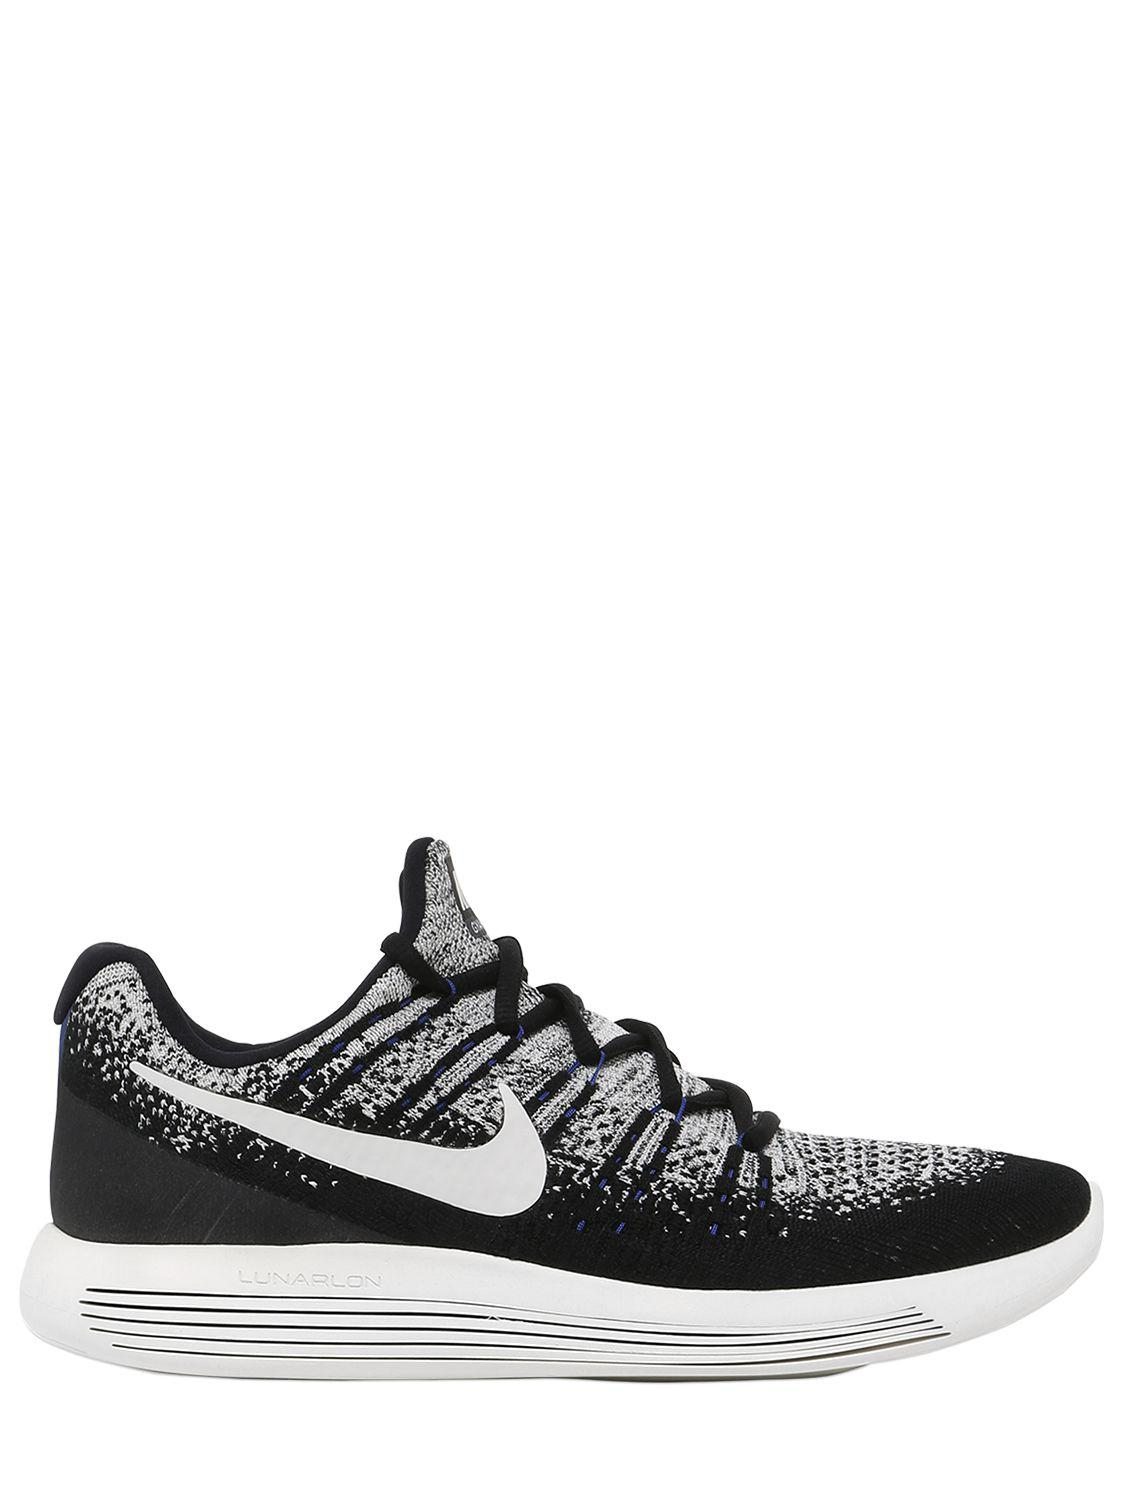 check out c595d 0cc55 Nike. Women s Black Nikelab Lunarepic Flyknit ...